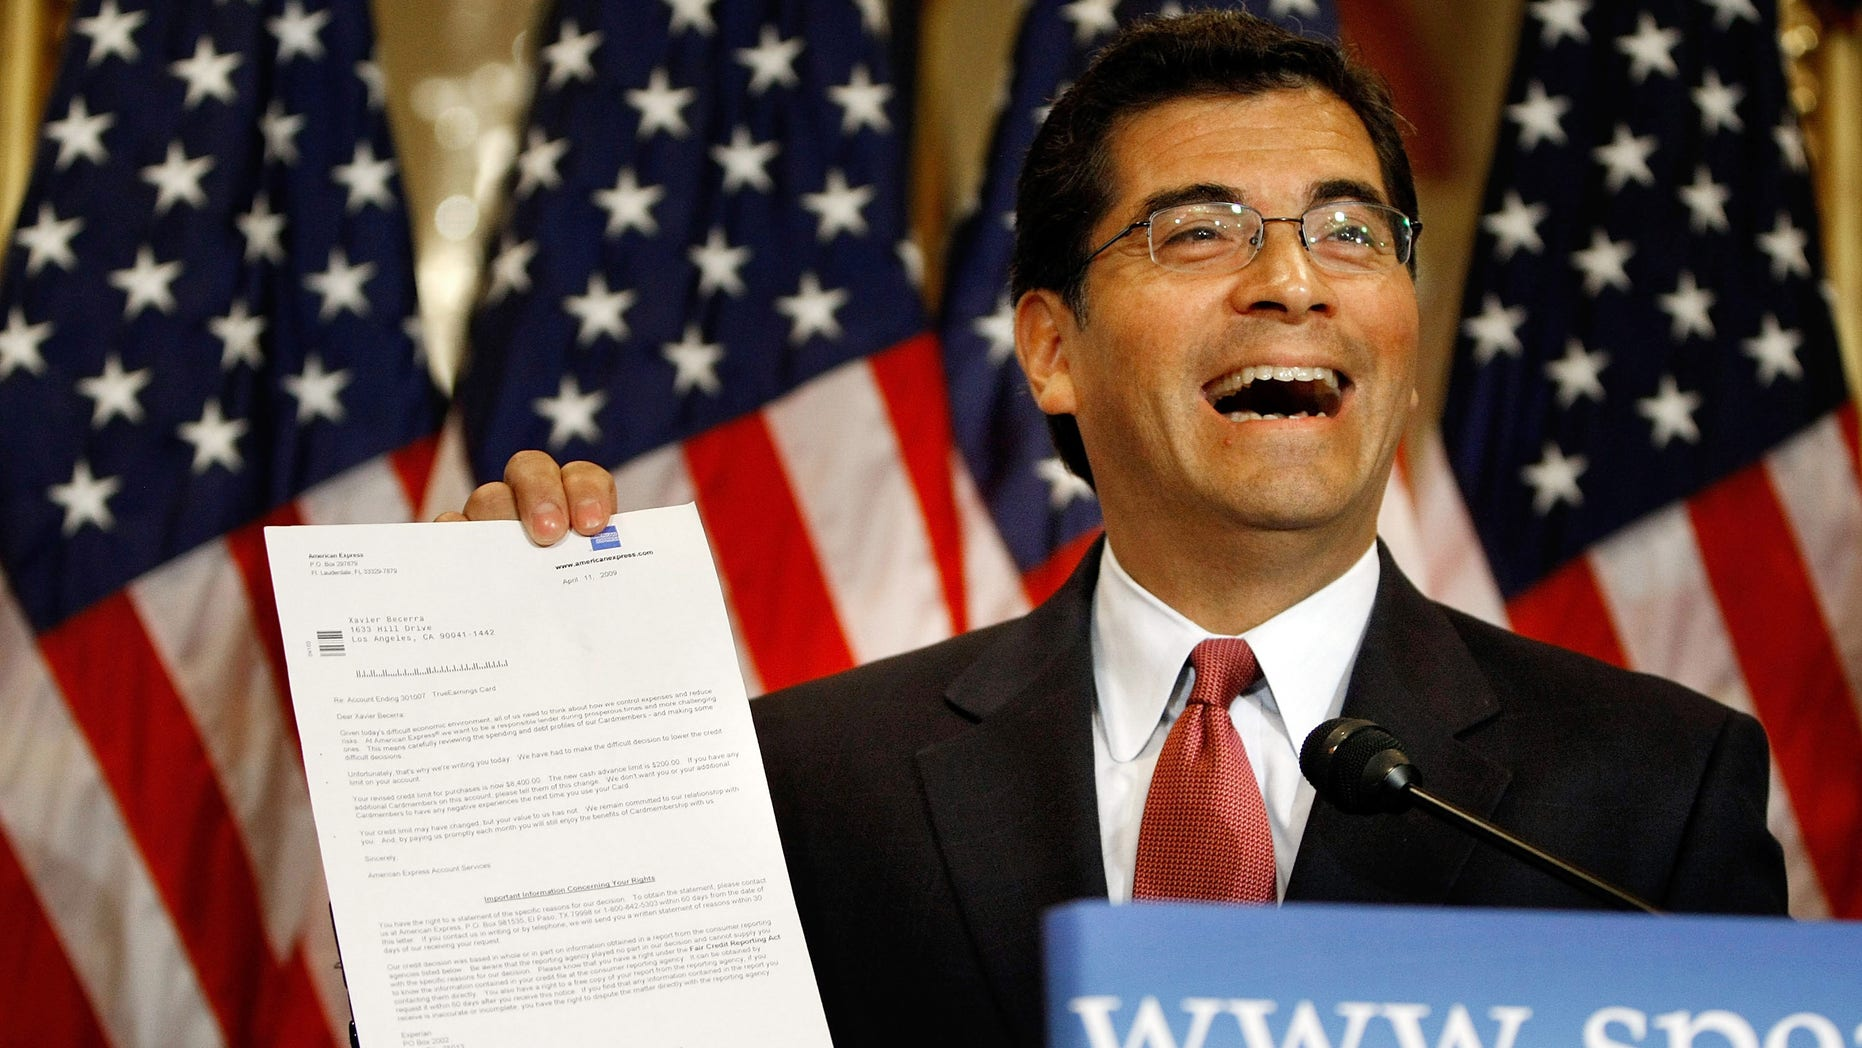 WASHINGTON - MAY 22:  House Democratic Caucus Vice Chair Rep. Xavier Becerra (D-CA) holds up a letter he received from his credit card company informing hime that his interest rate will increace during the Speaker of the House's weekly news conference at the U.S. Captiol May 22, 2009 in Washington, DC. Speaker of the Hosue Nancy Pelosi (D-CA) turned the news conference into an opportunity to list what she and the Democratic House leadership considered their successes of the 111th Congress' first session. She took a handful of questions about her upcomming trip to China and her statements about the CIA.  (Photo by Chip Somodevilla/Getty Images)